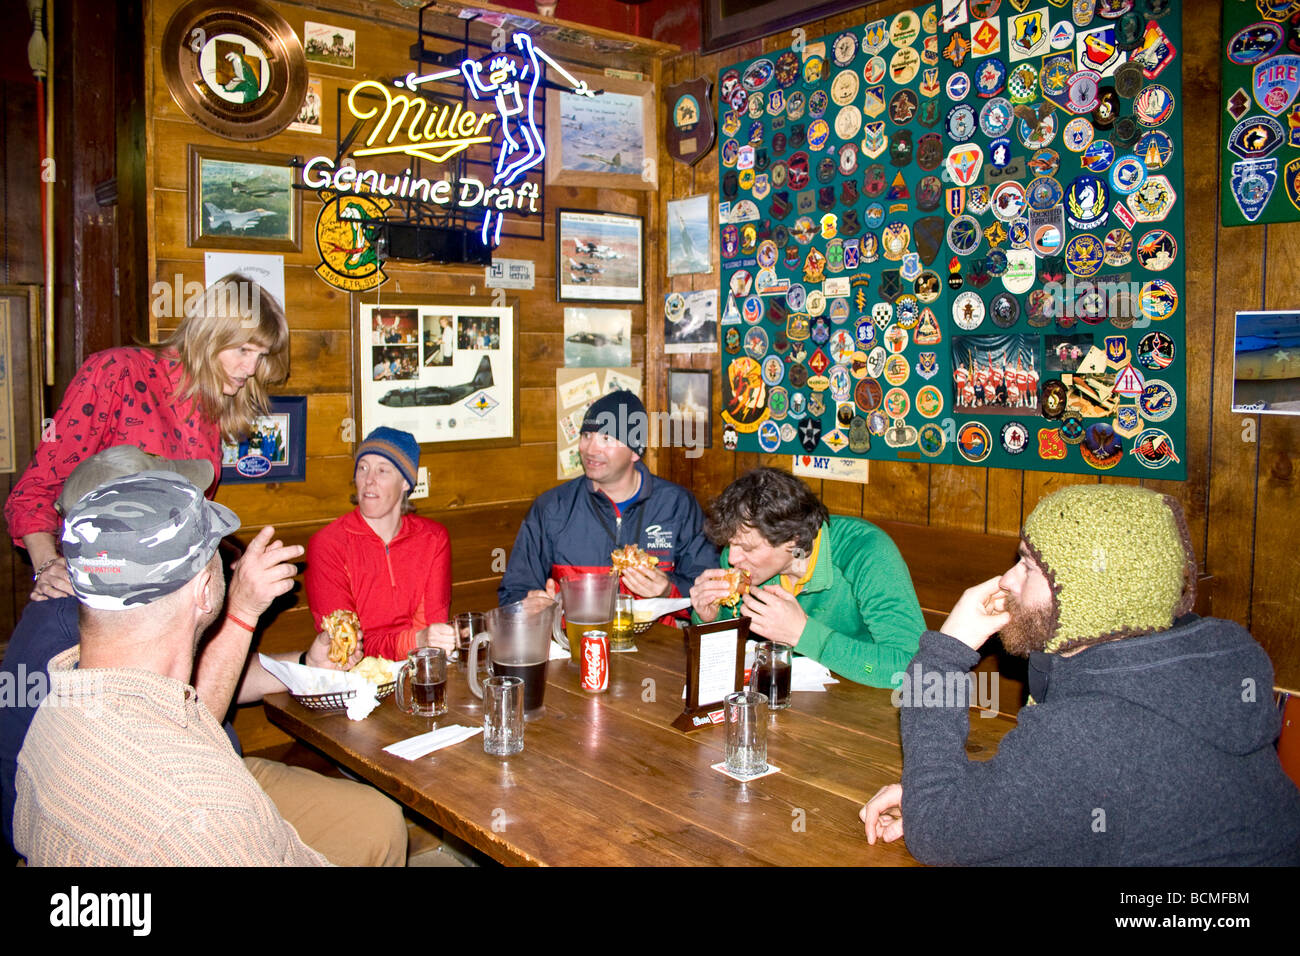 Shooting Star Saloon in Huntsville Utah. This is reportedly the oldest continuously running saloon in Utah. - Stock Image